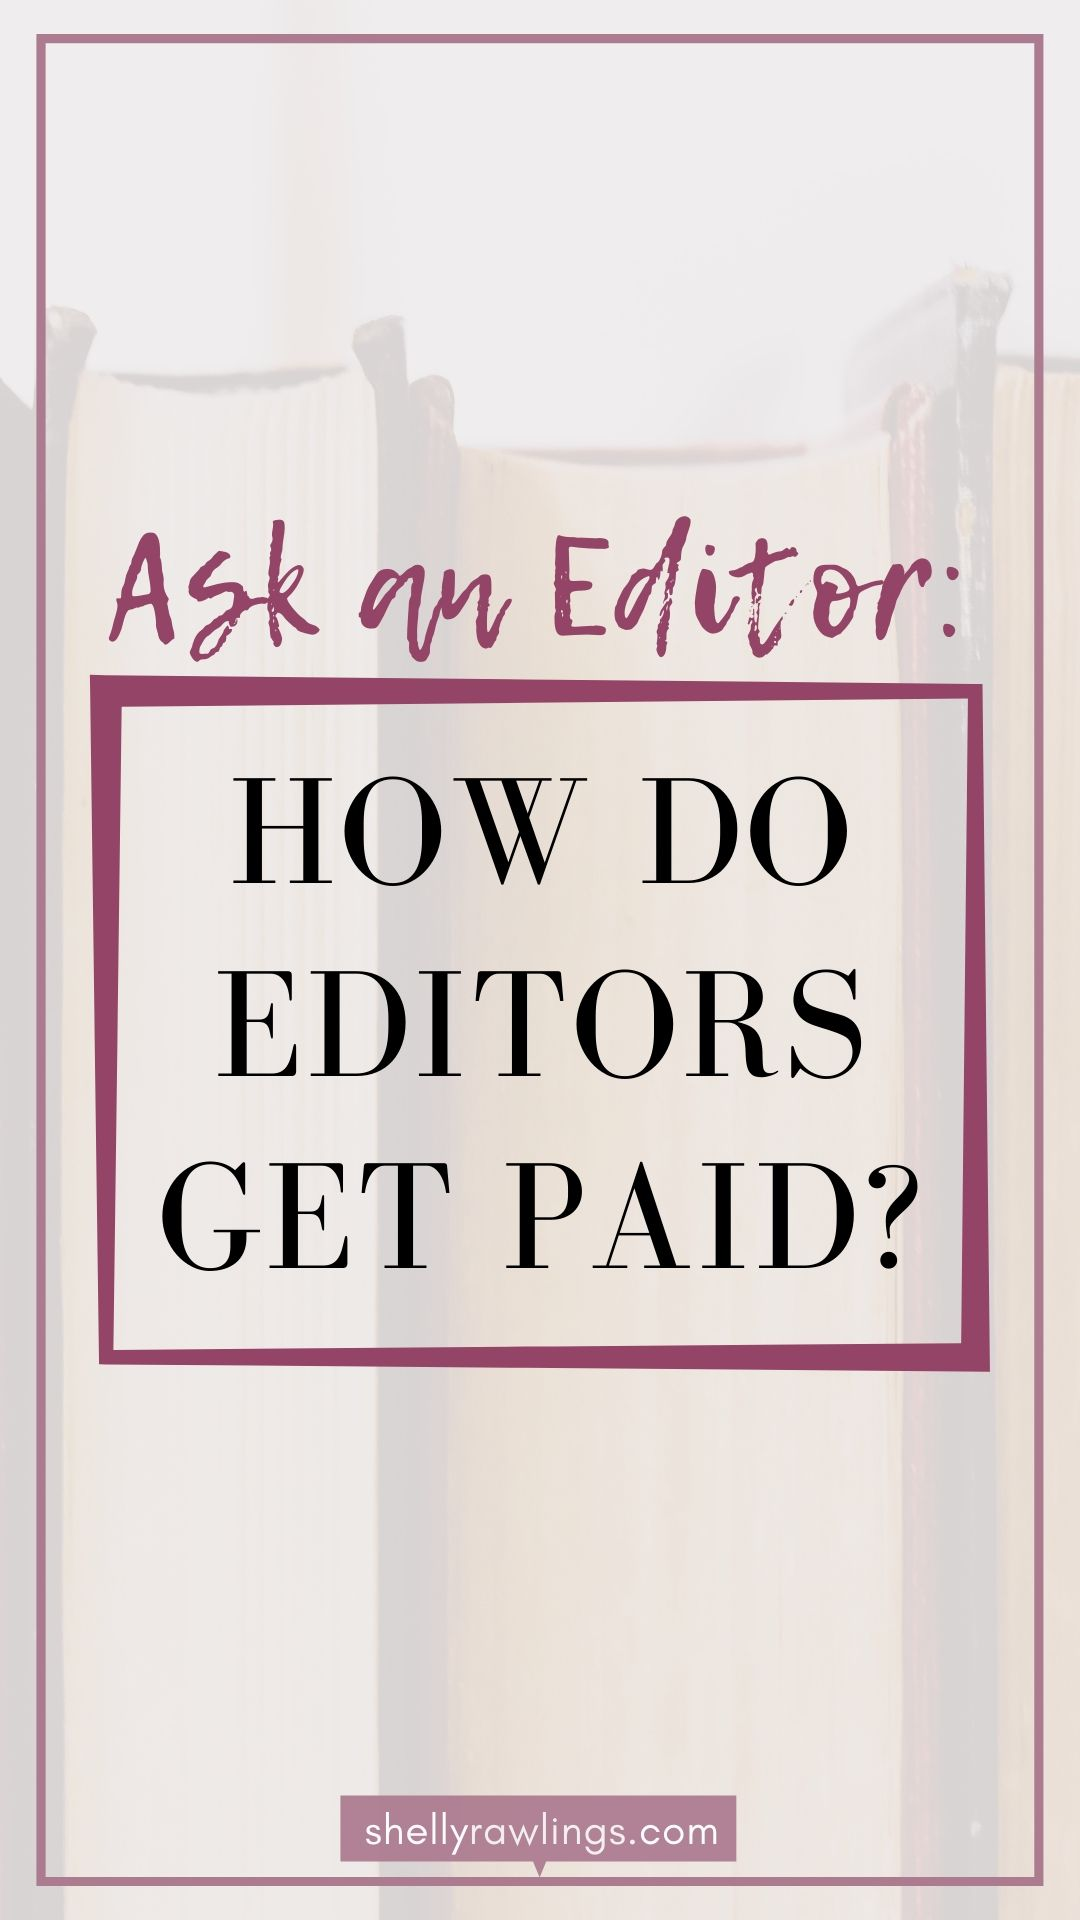 Ask An Editor: How do editors get paid?